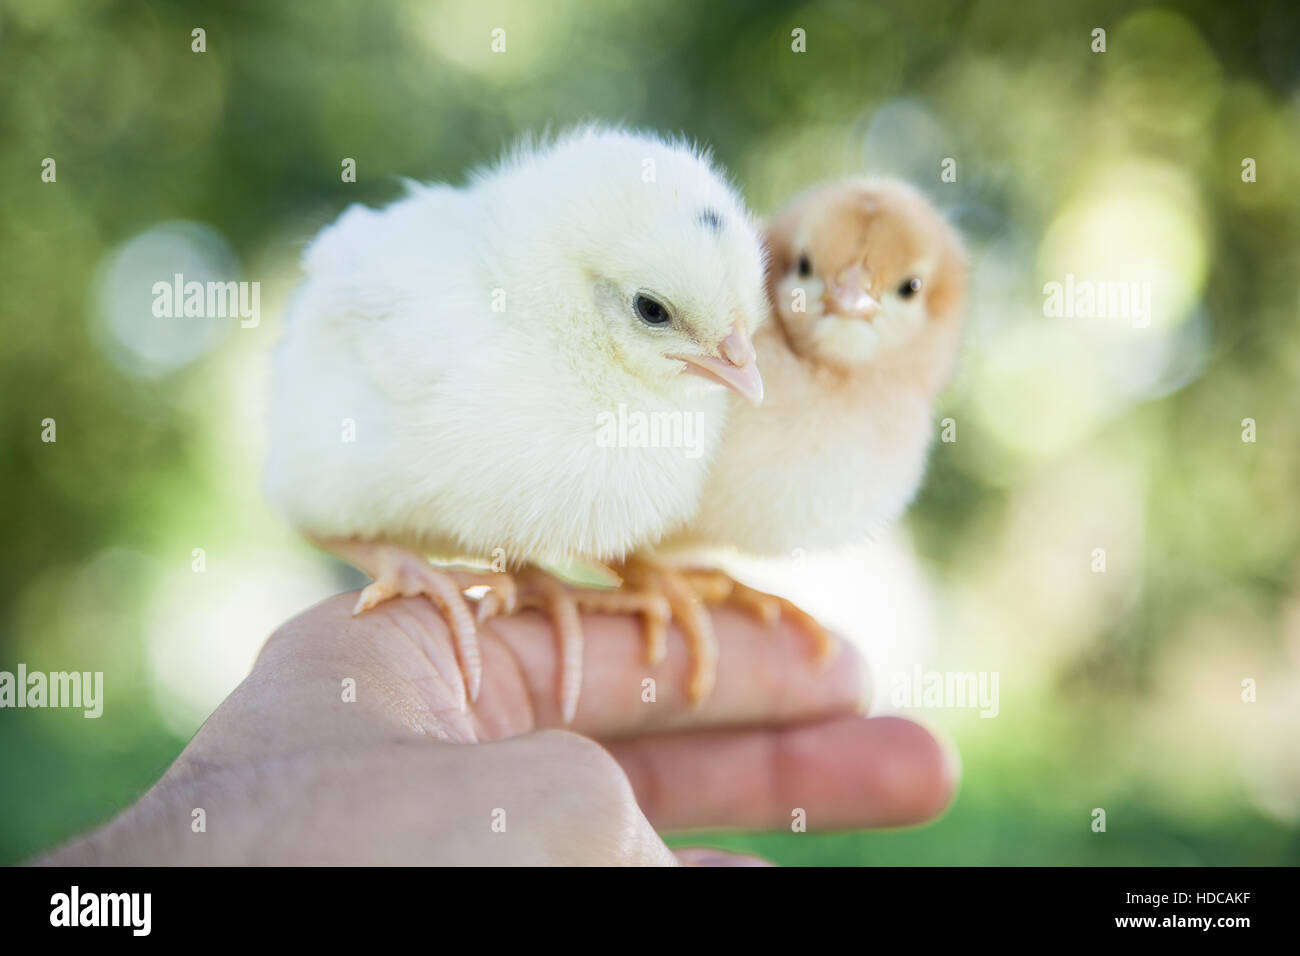 Cute little chicks - Stock Image